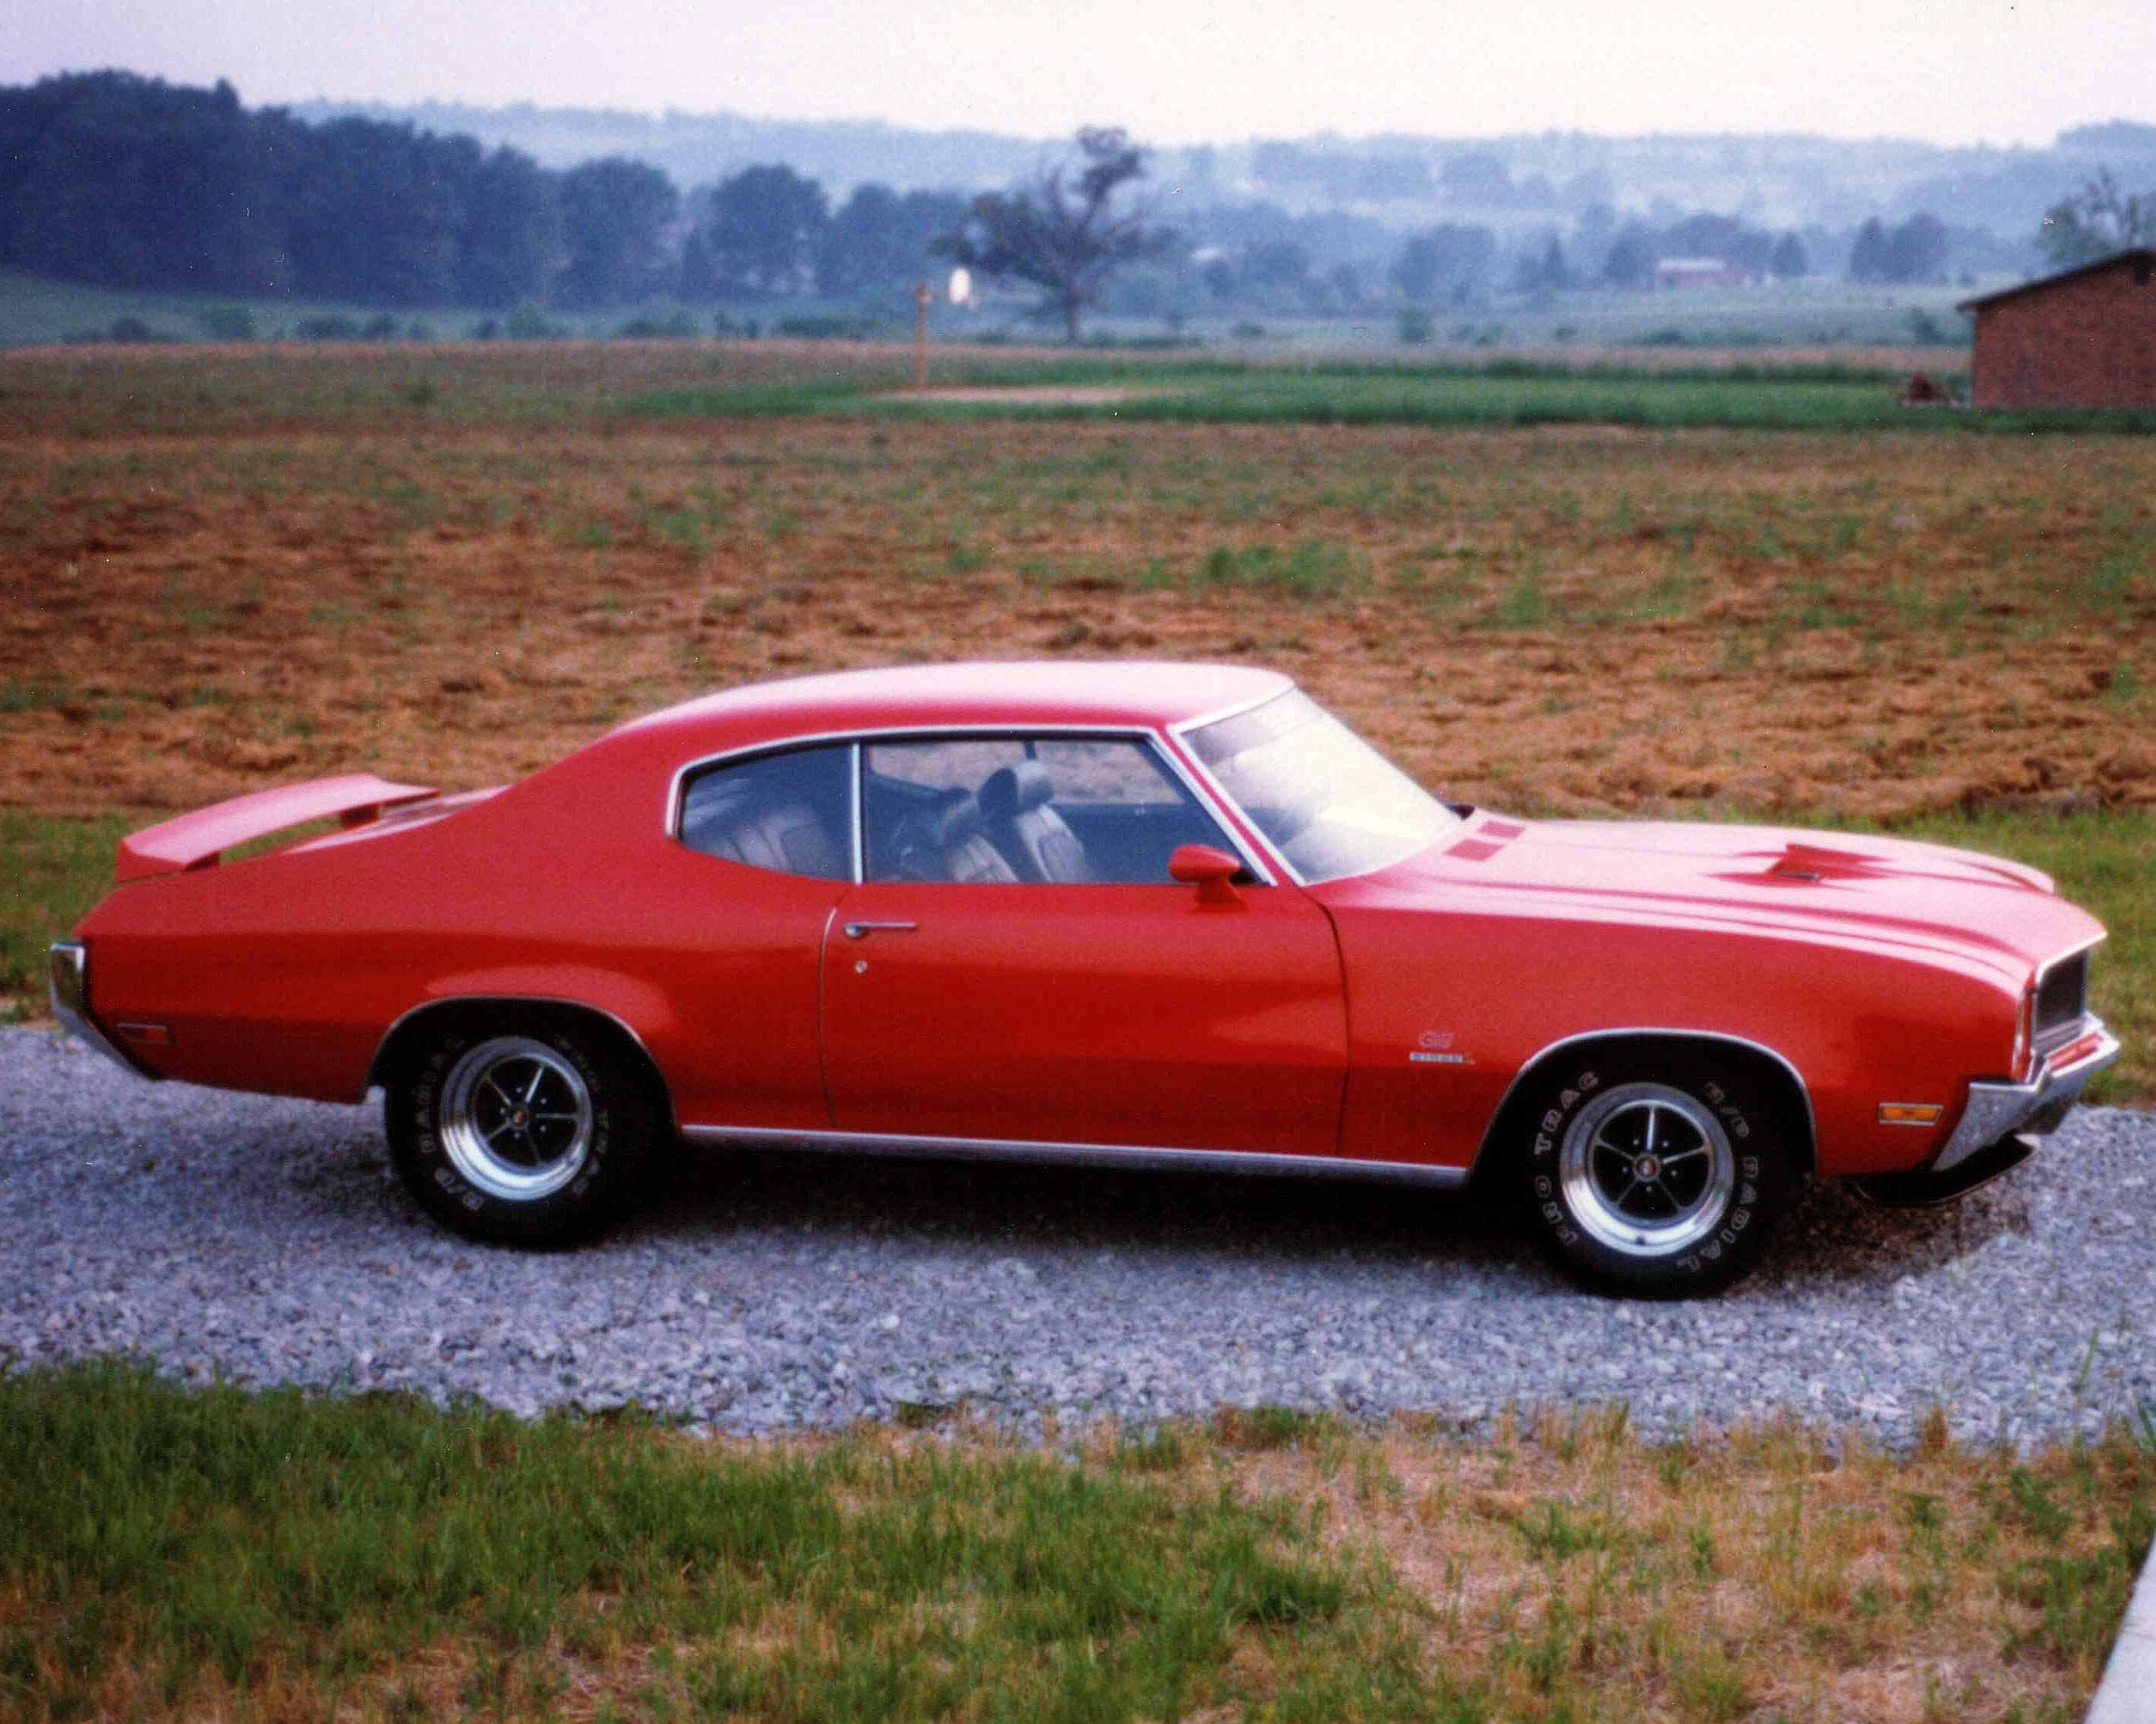 15 Best American Classic Muscle Cars of All Time - RankRed